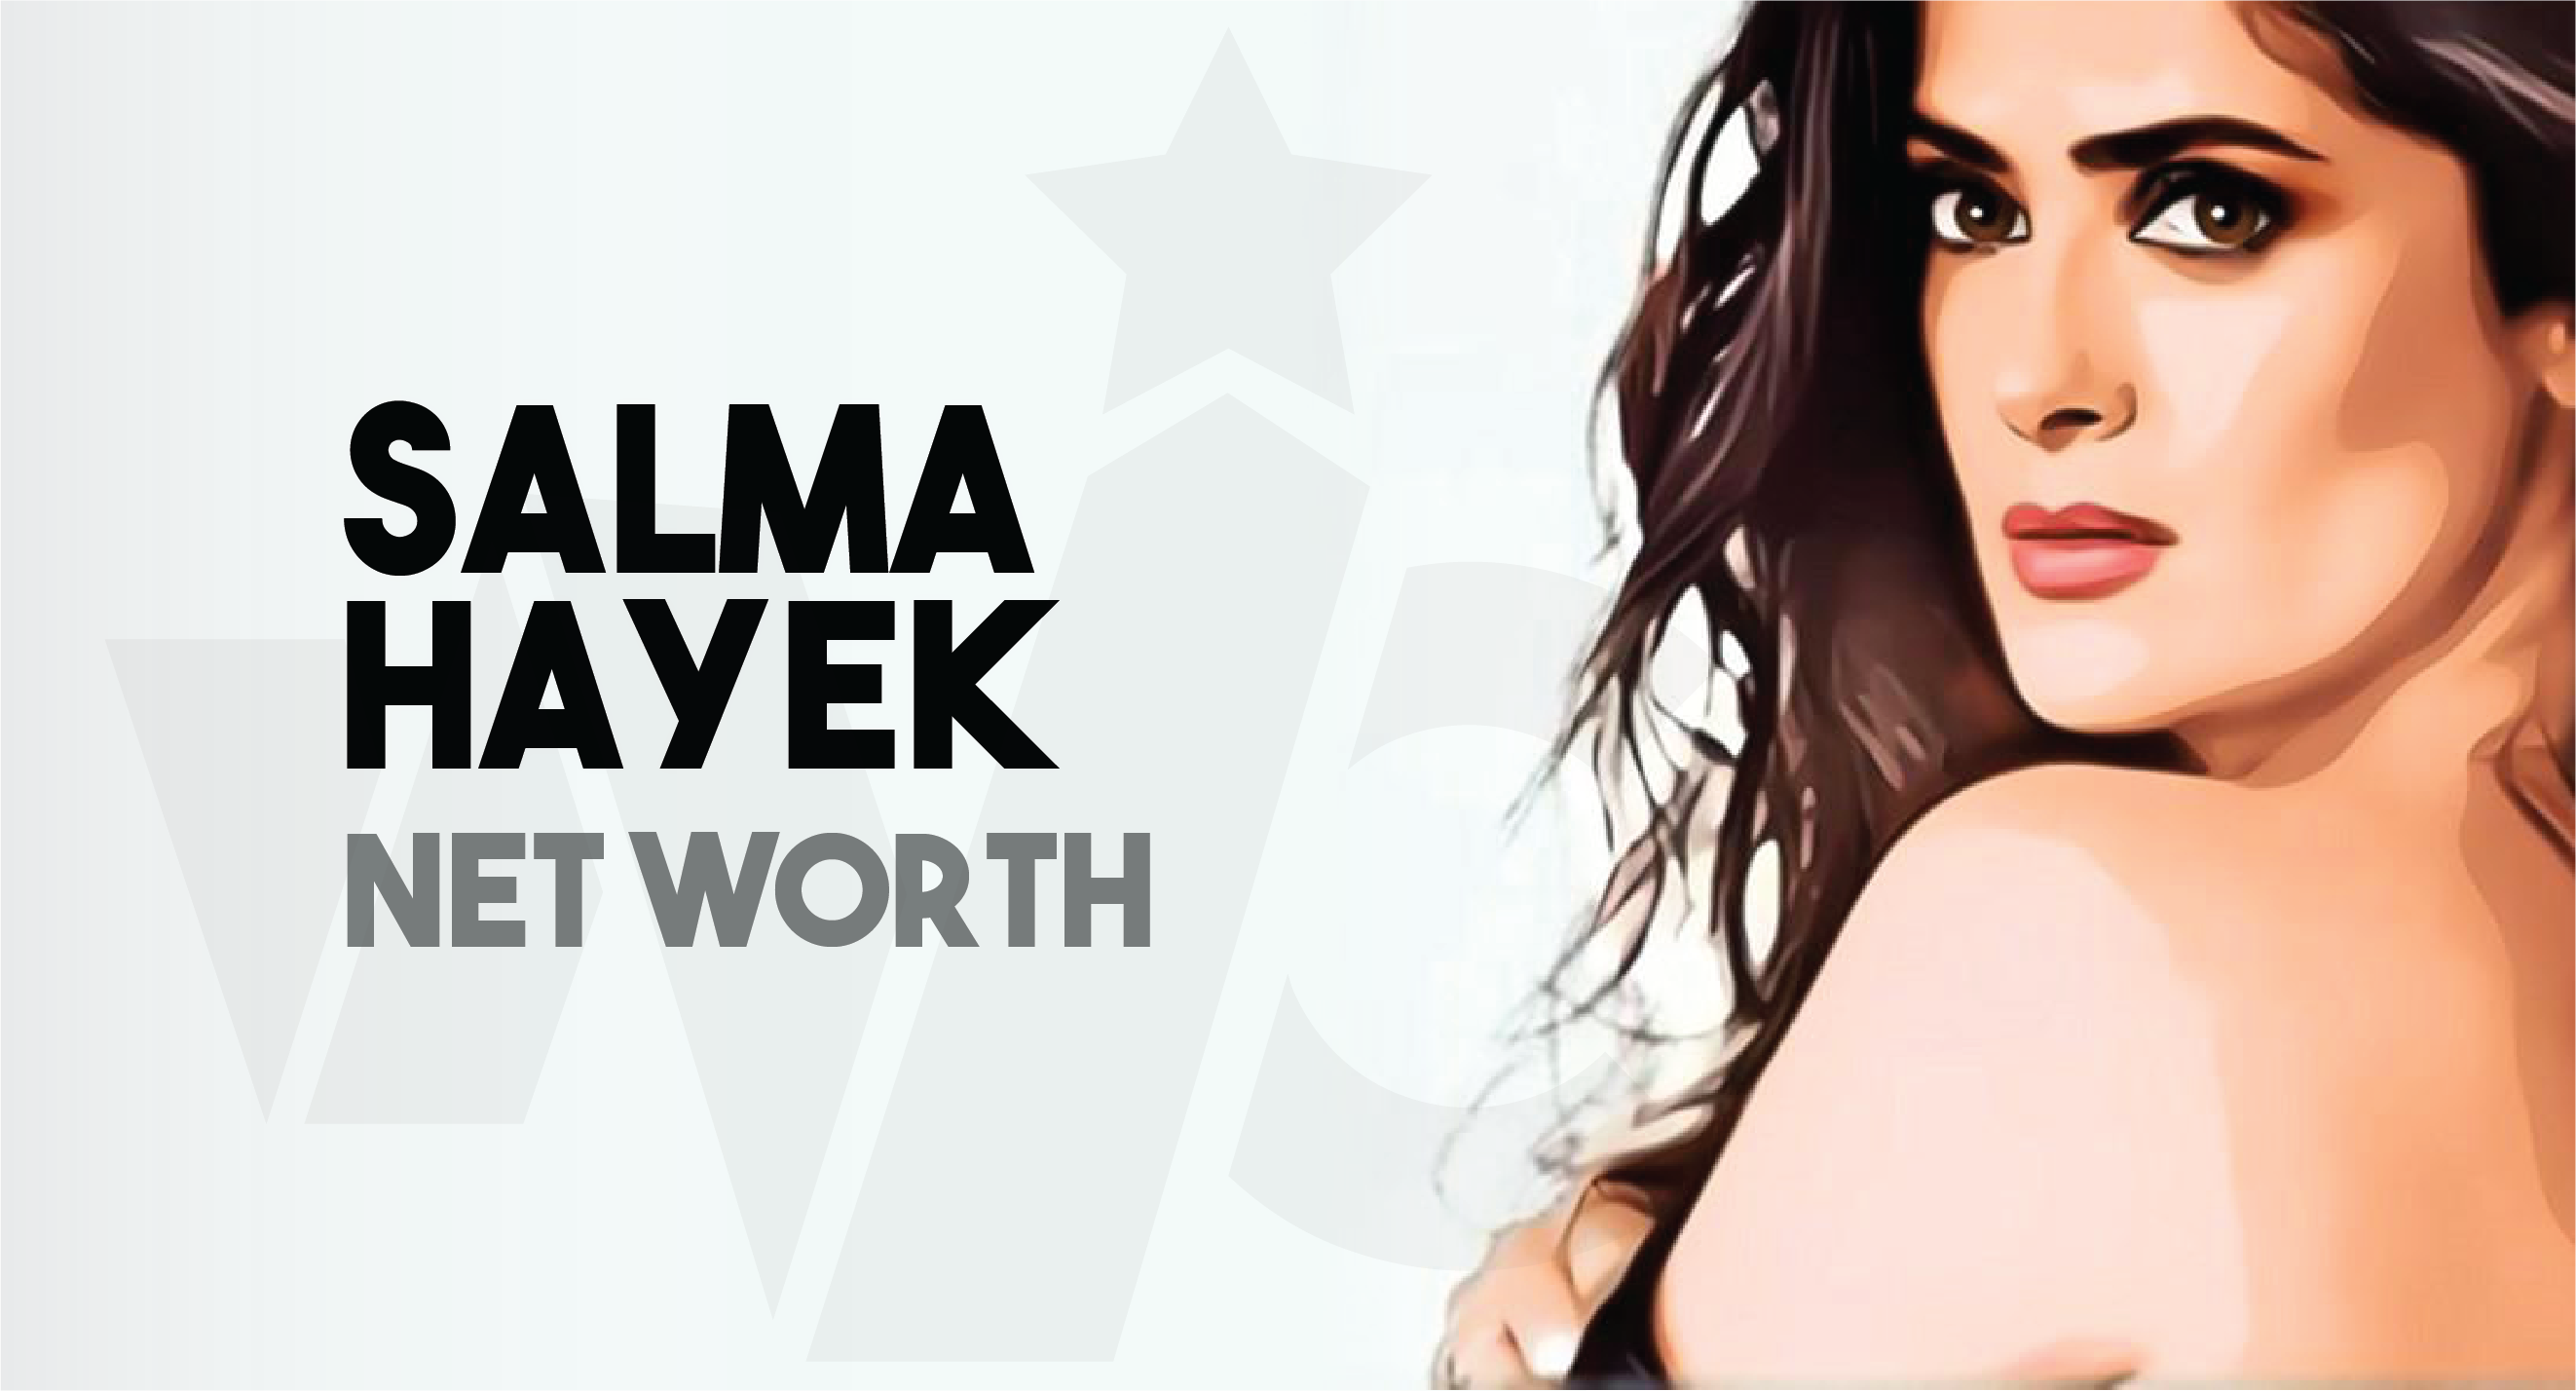 Salma Hayek_Net worth